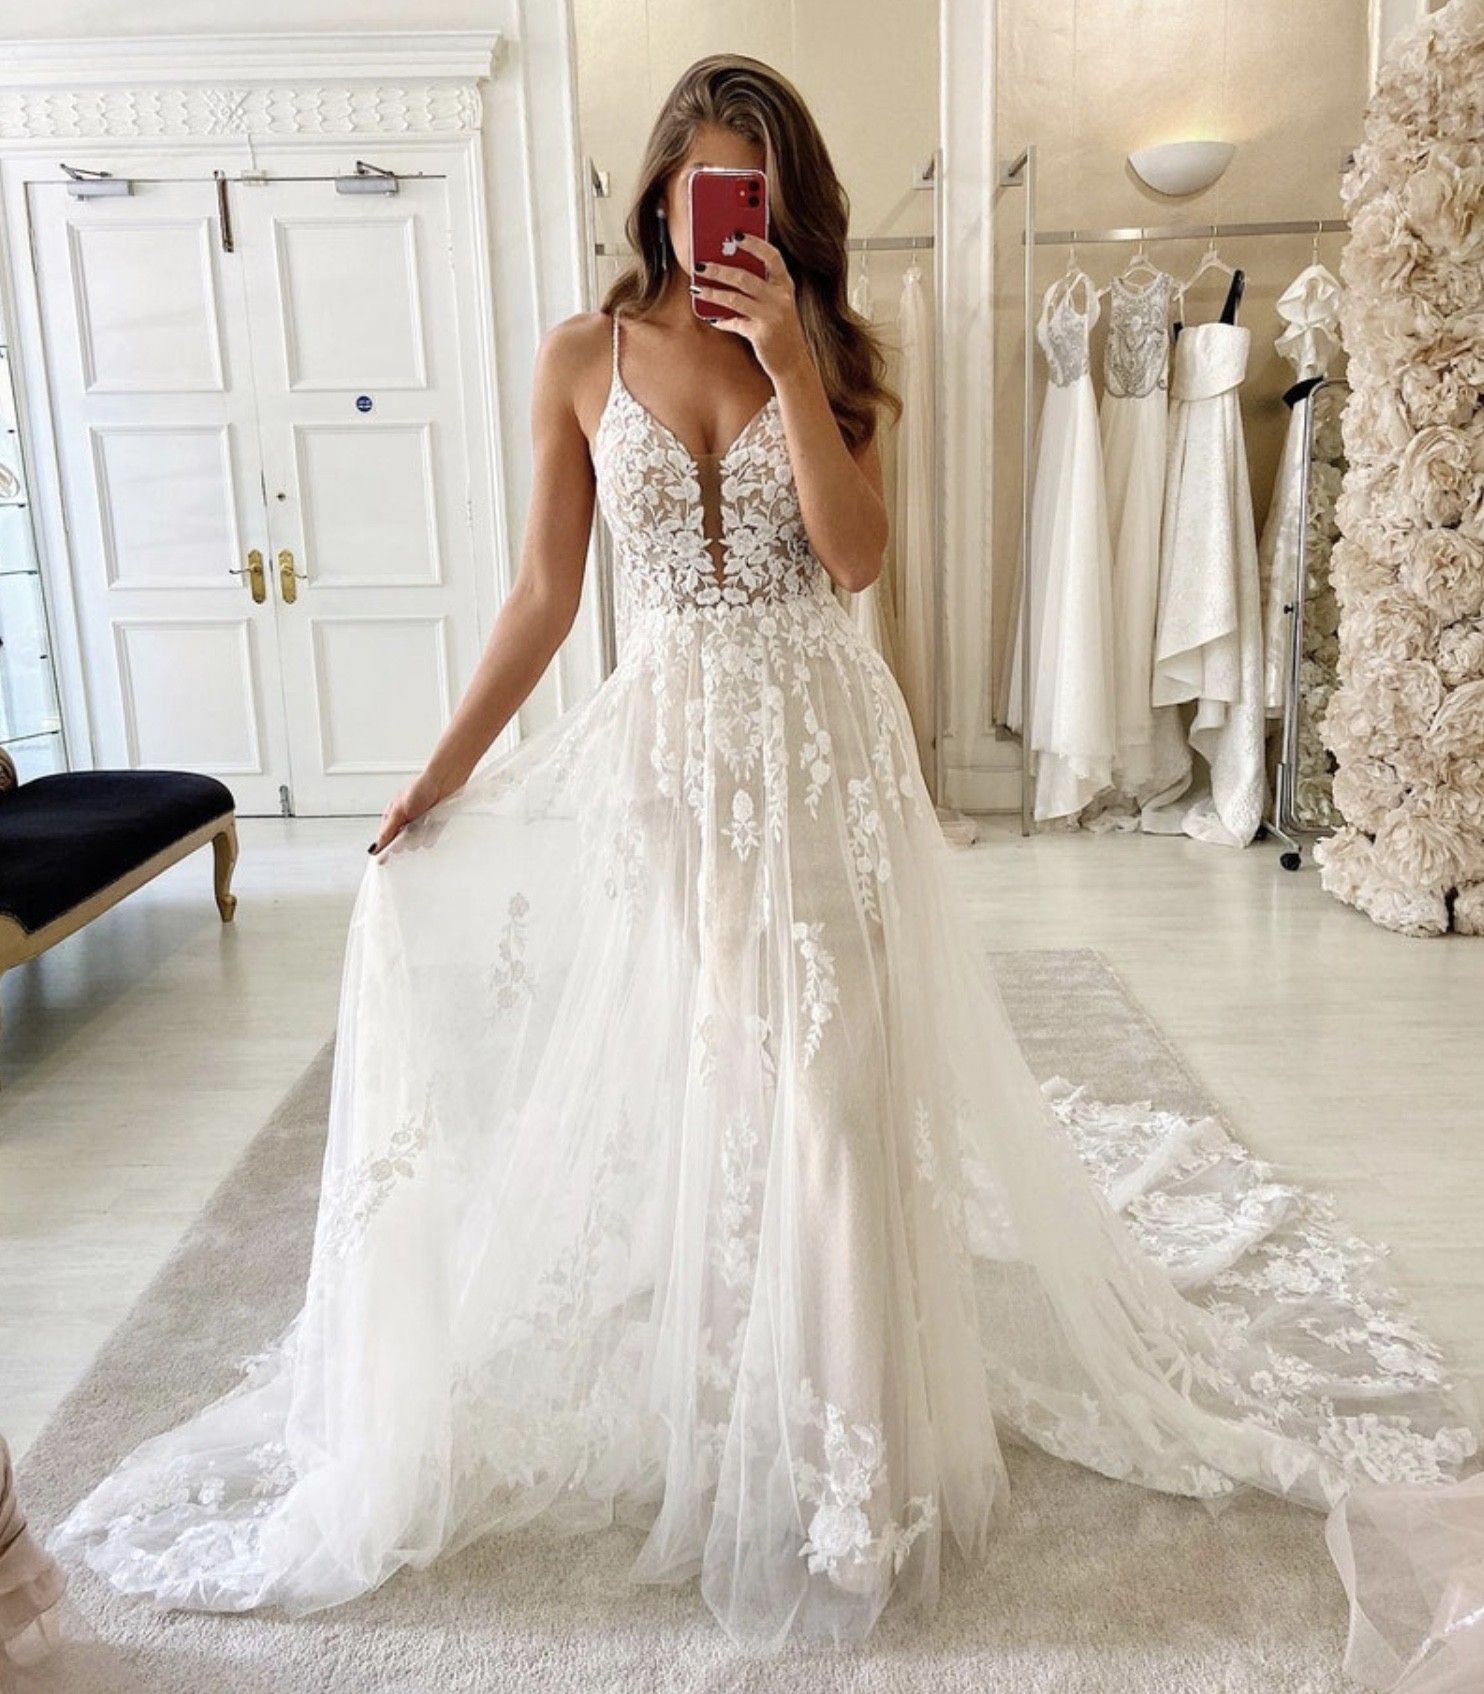 Wedding Dresses & Bridal Gowns Wedding Sarees Online Ladies Evening Suits Uk Gown For Wedding Party Formal Dresses For Award Ceremony